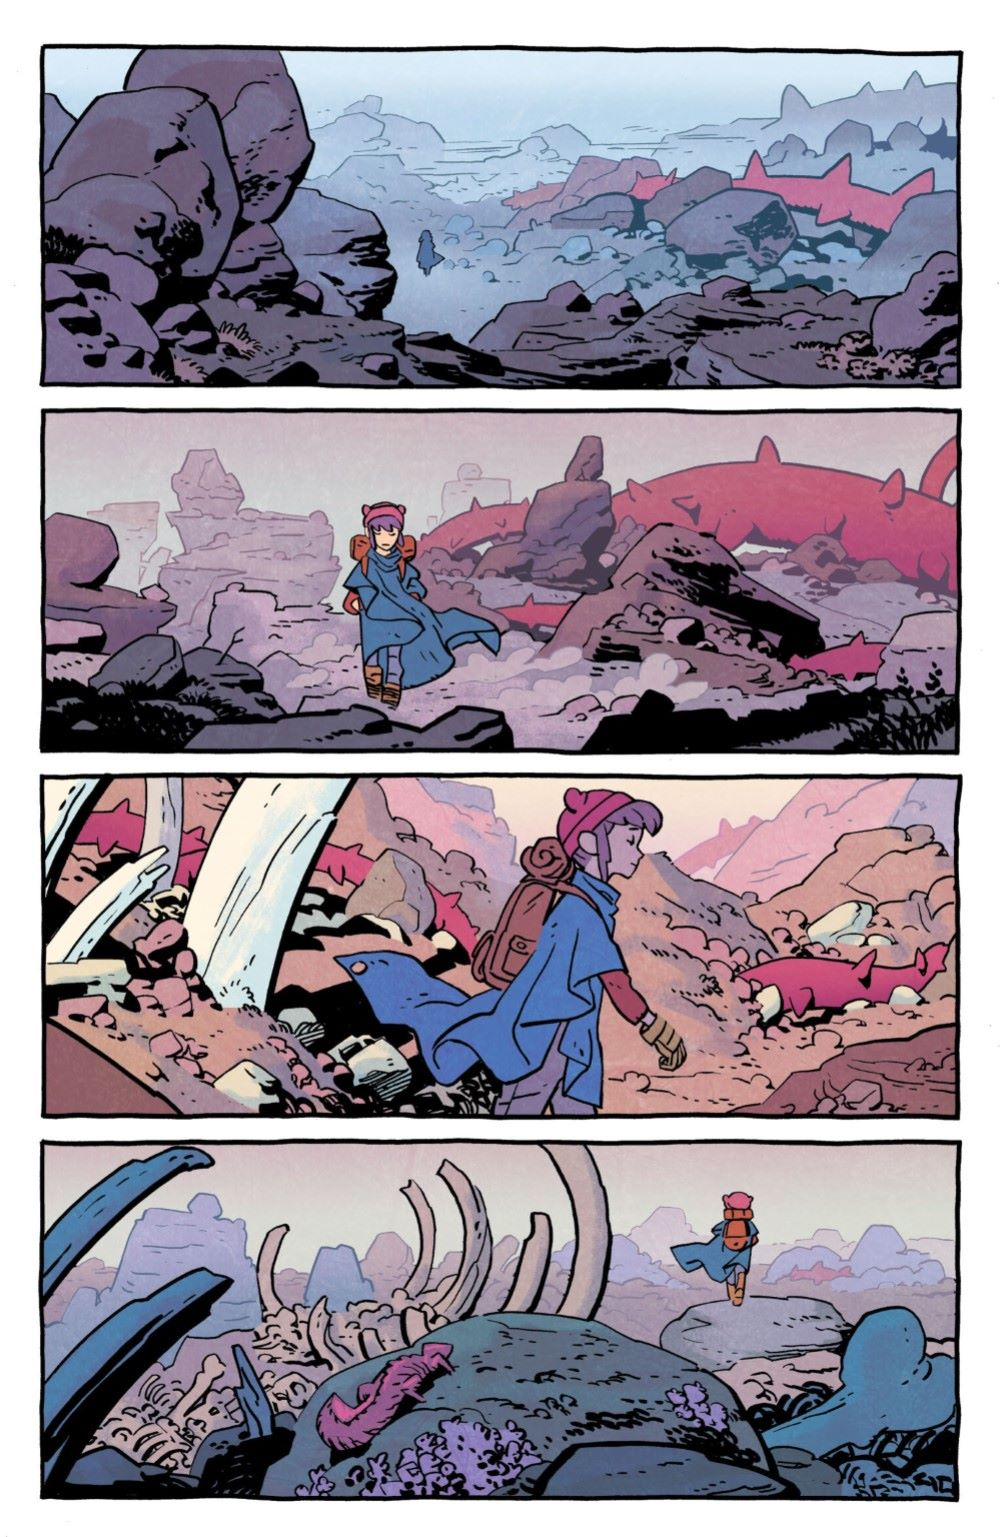 JONNA-2-MARKETING-02 ComicList Previews: JONNA AND THE UNPOSSIBLE MONSTERS #2